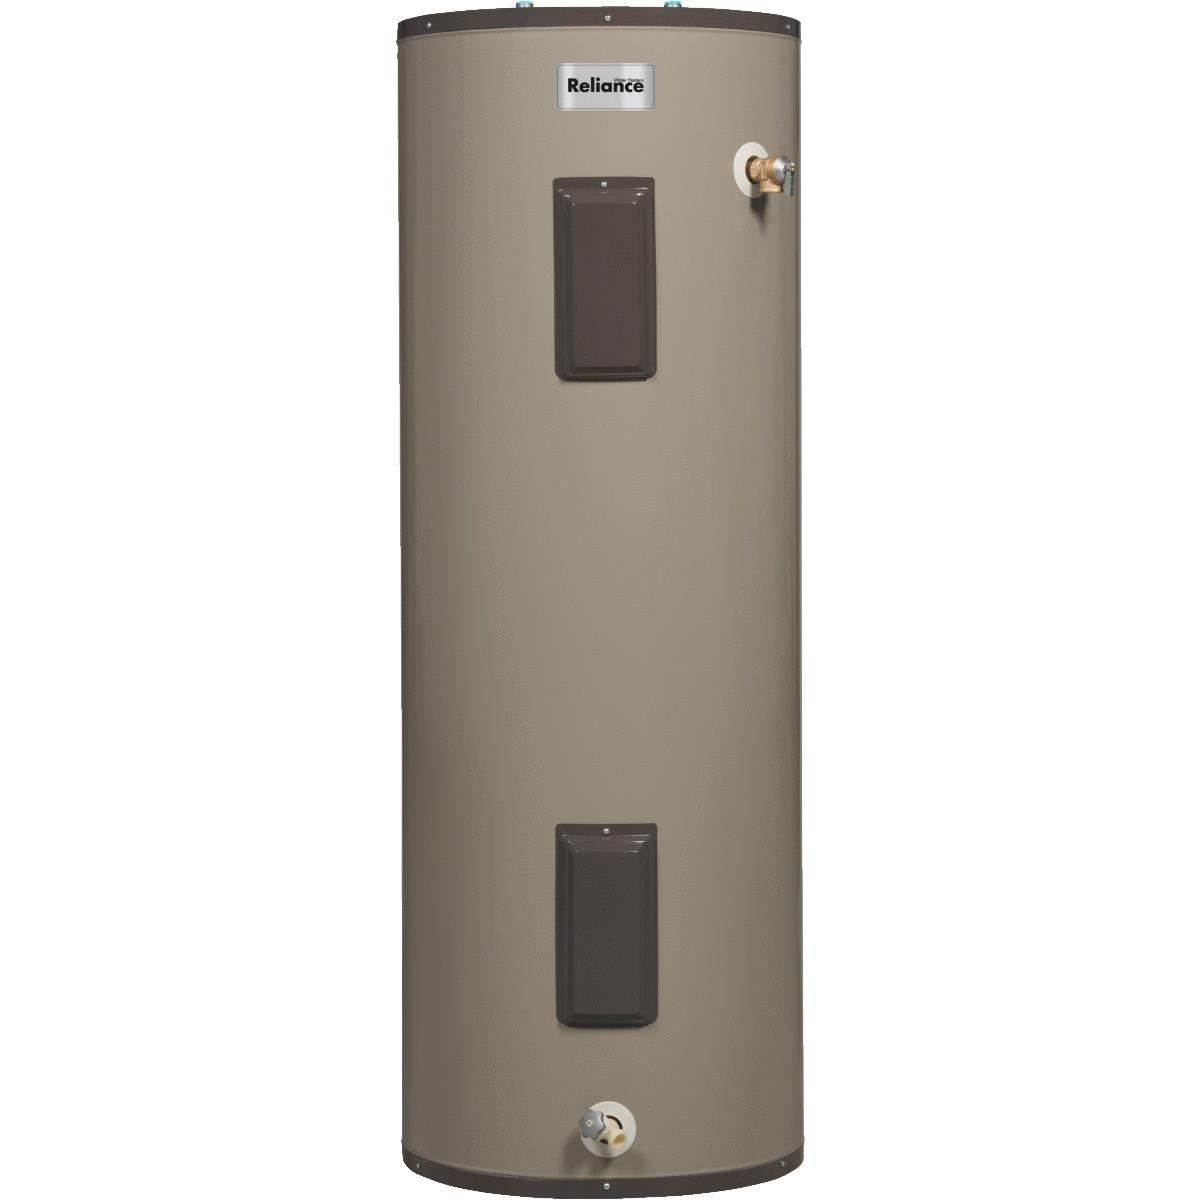 Reliance Self-Cleaning Electric Water Heater